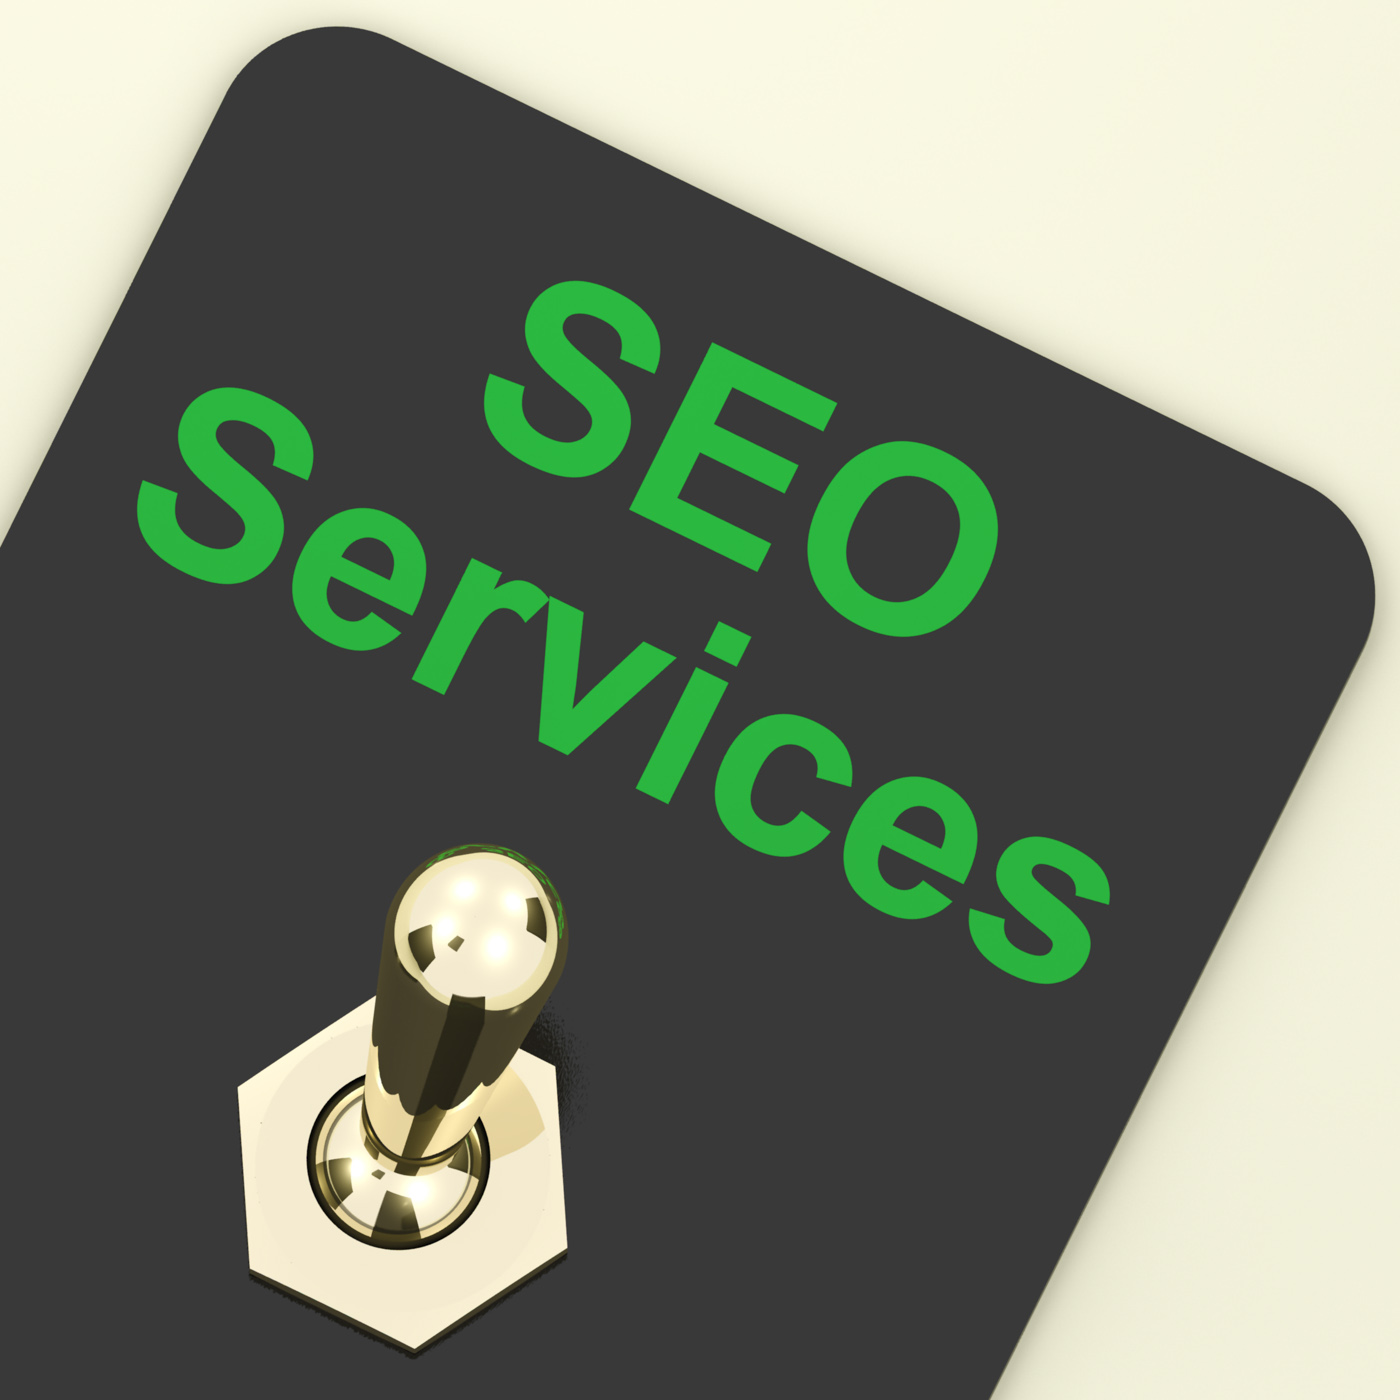 Seo services switch representing internet optimization and promotion photo